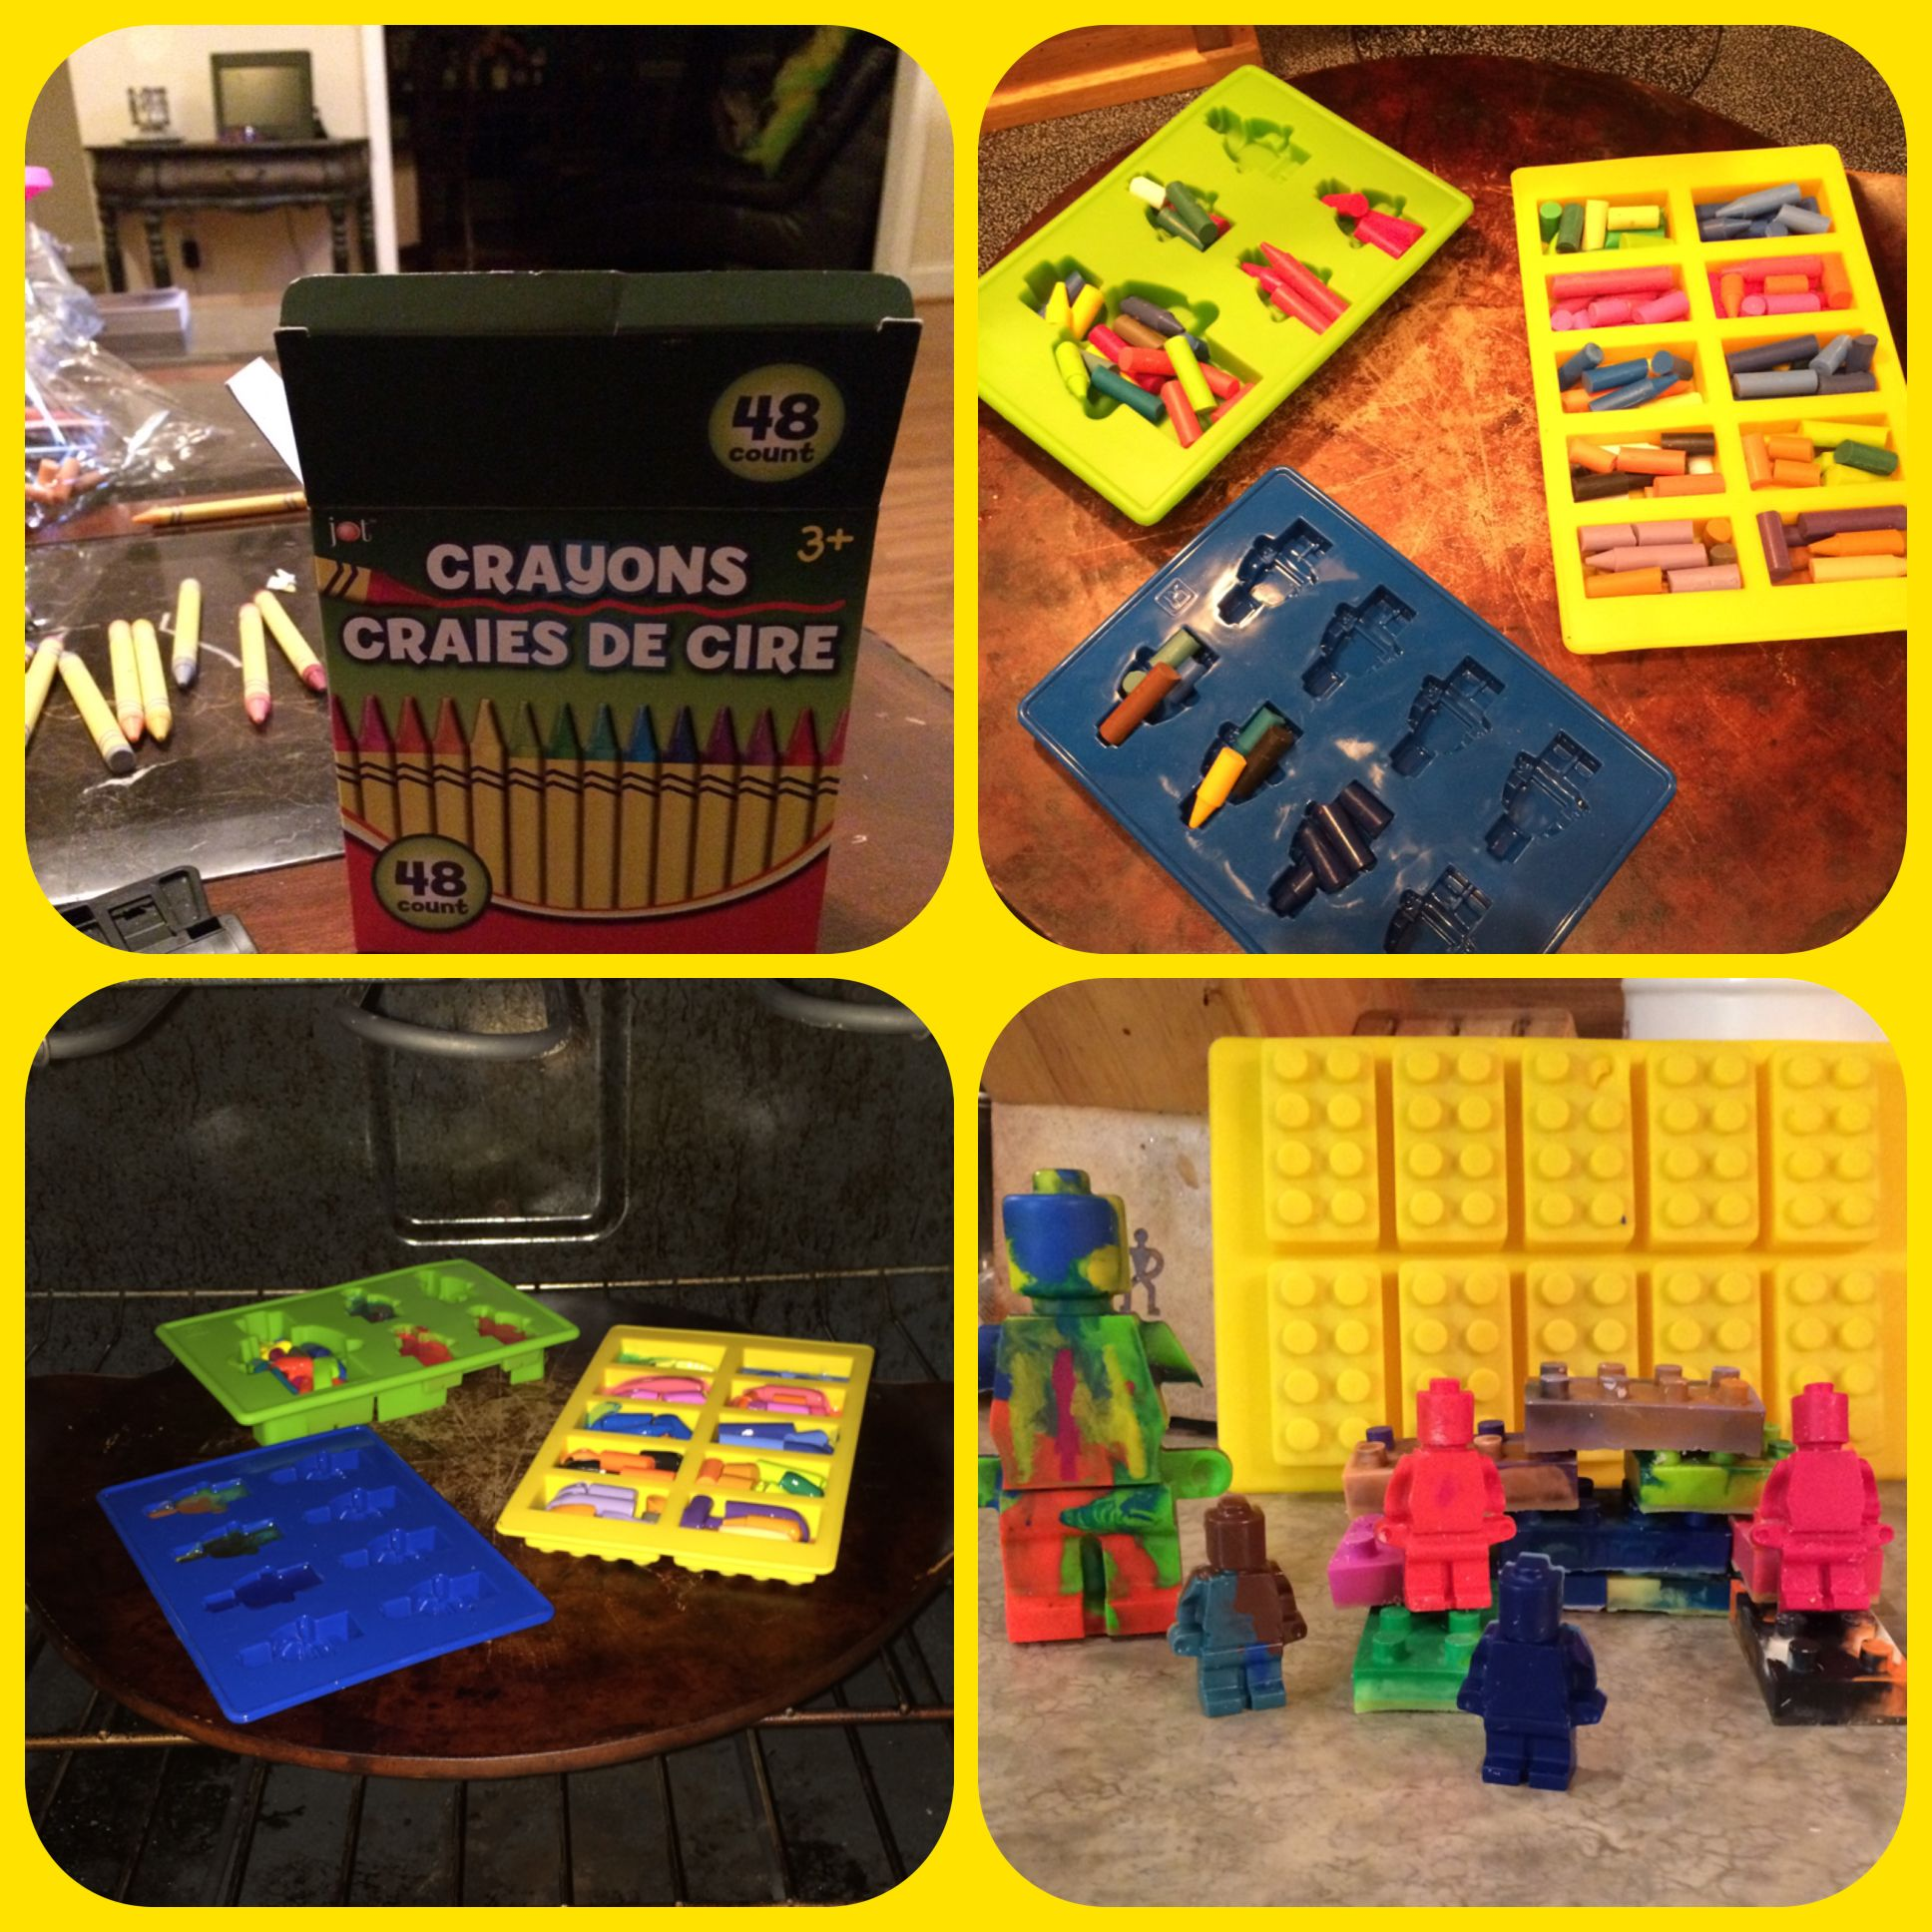 Kids love making your own crayons with silicone Lego molds. You can use the molds for ice cubes, jello, or gum miles. The Lego fun is endless